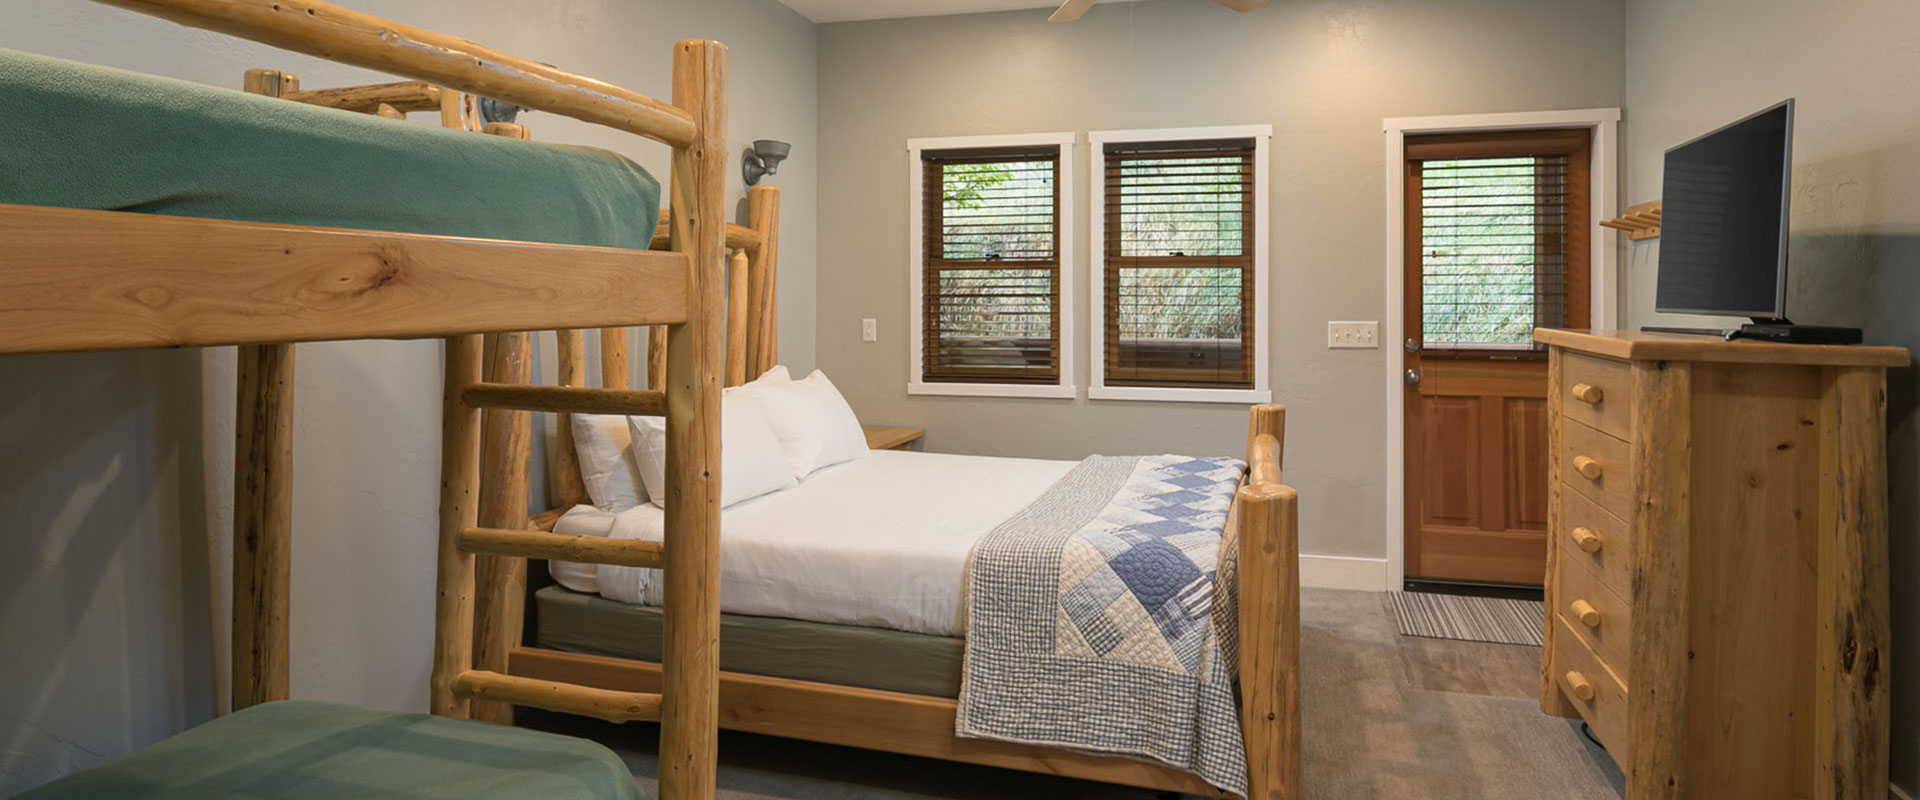 The sandstone cliffs are covered with a dusting of snow in the winter in Moab, Utah, with black skeletal branches of trees in the foreground.